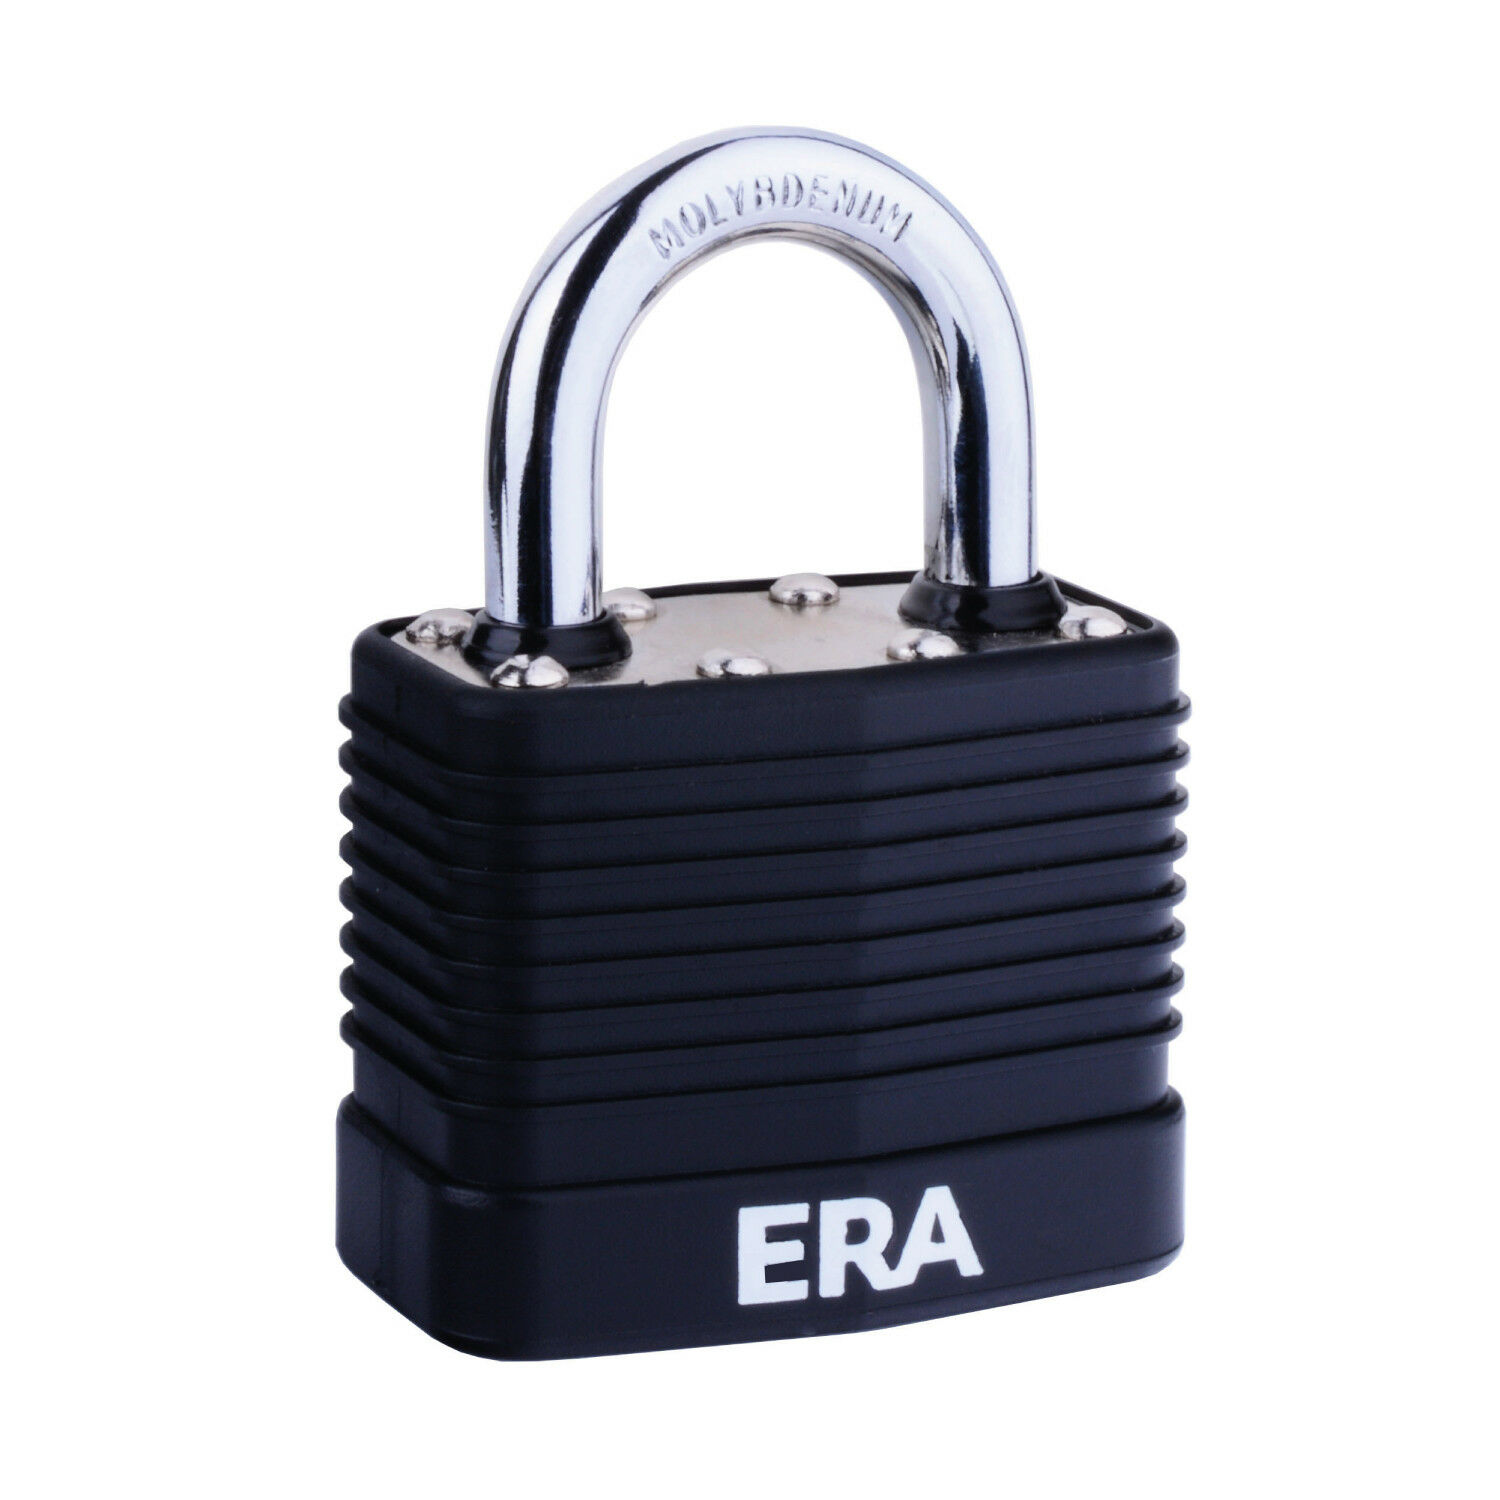 ERA WEATHERPROOF Laminated PADLOCKS Excellent Quality 40mm /& 55mm Sizes New